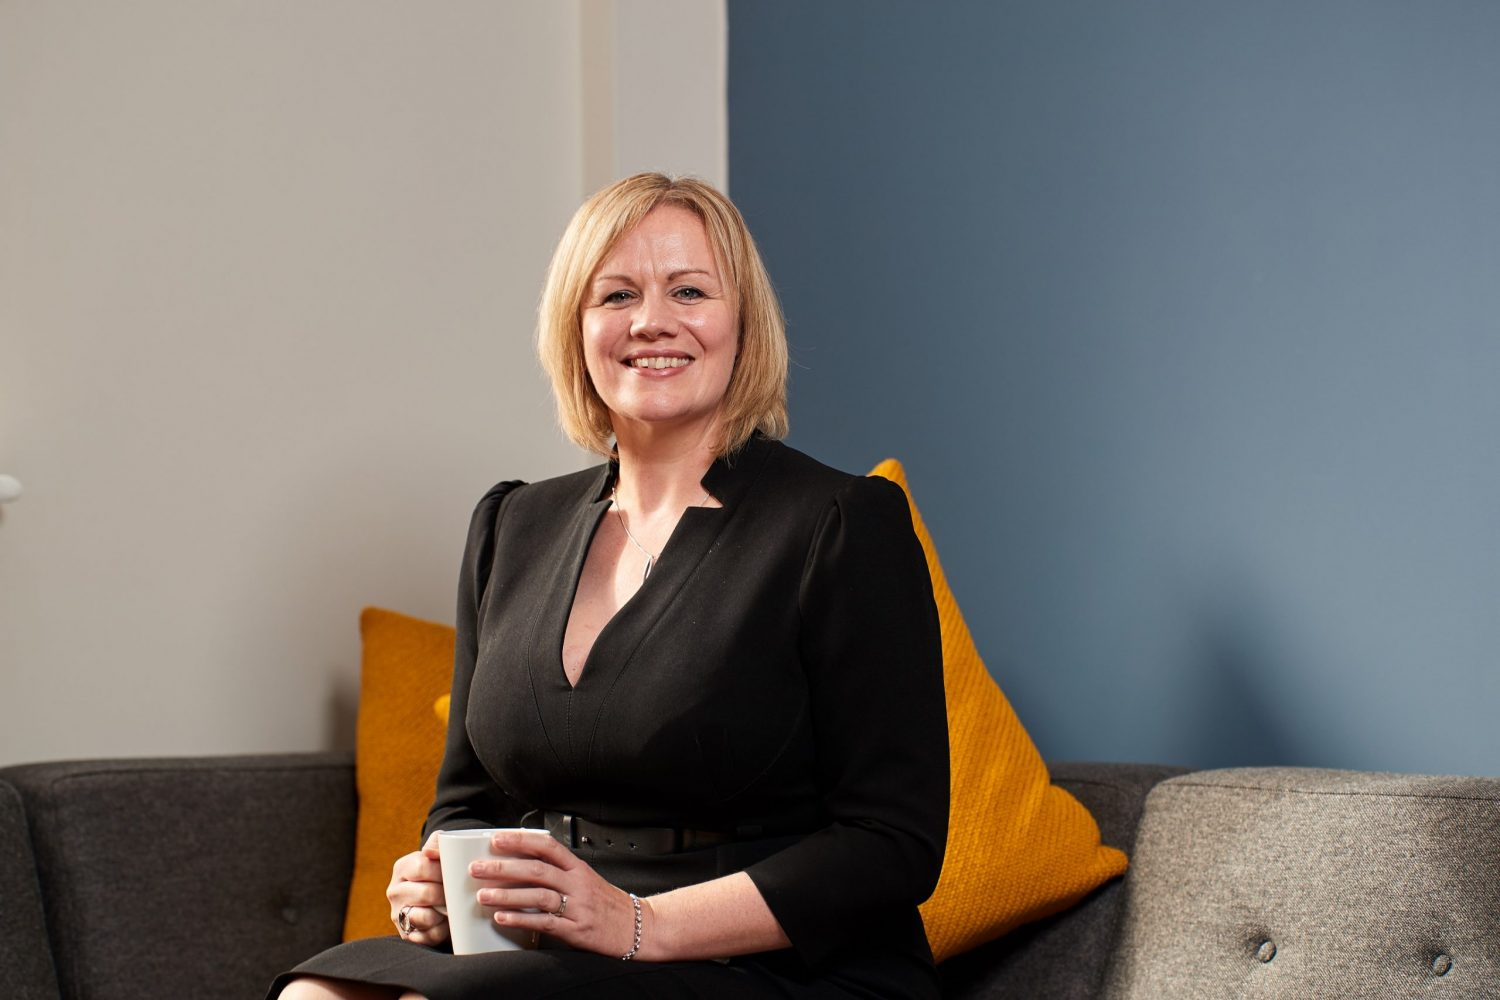 Joanne Whitfield, Fund Director at FW Capital sitting on a couch holding a mug